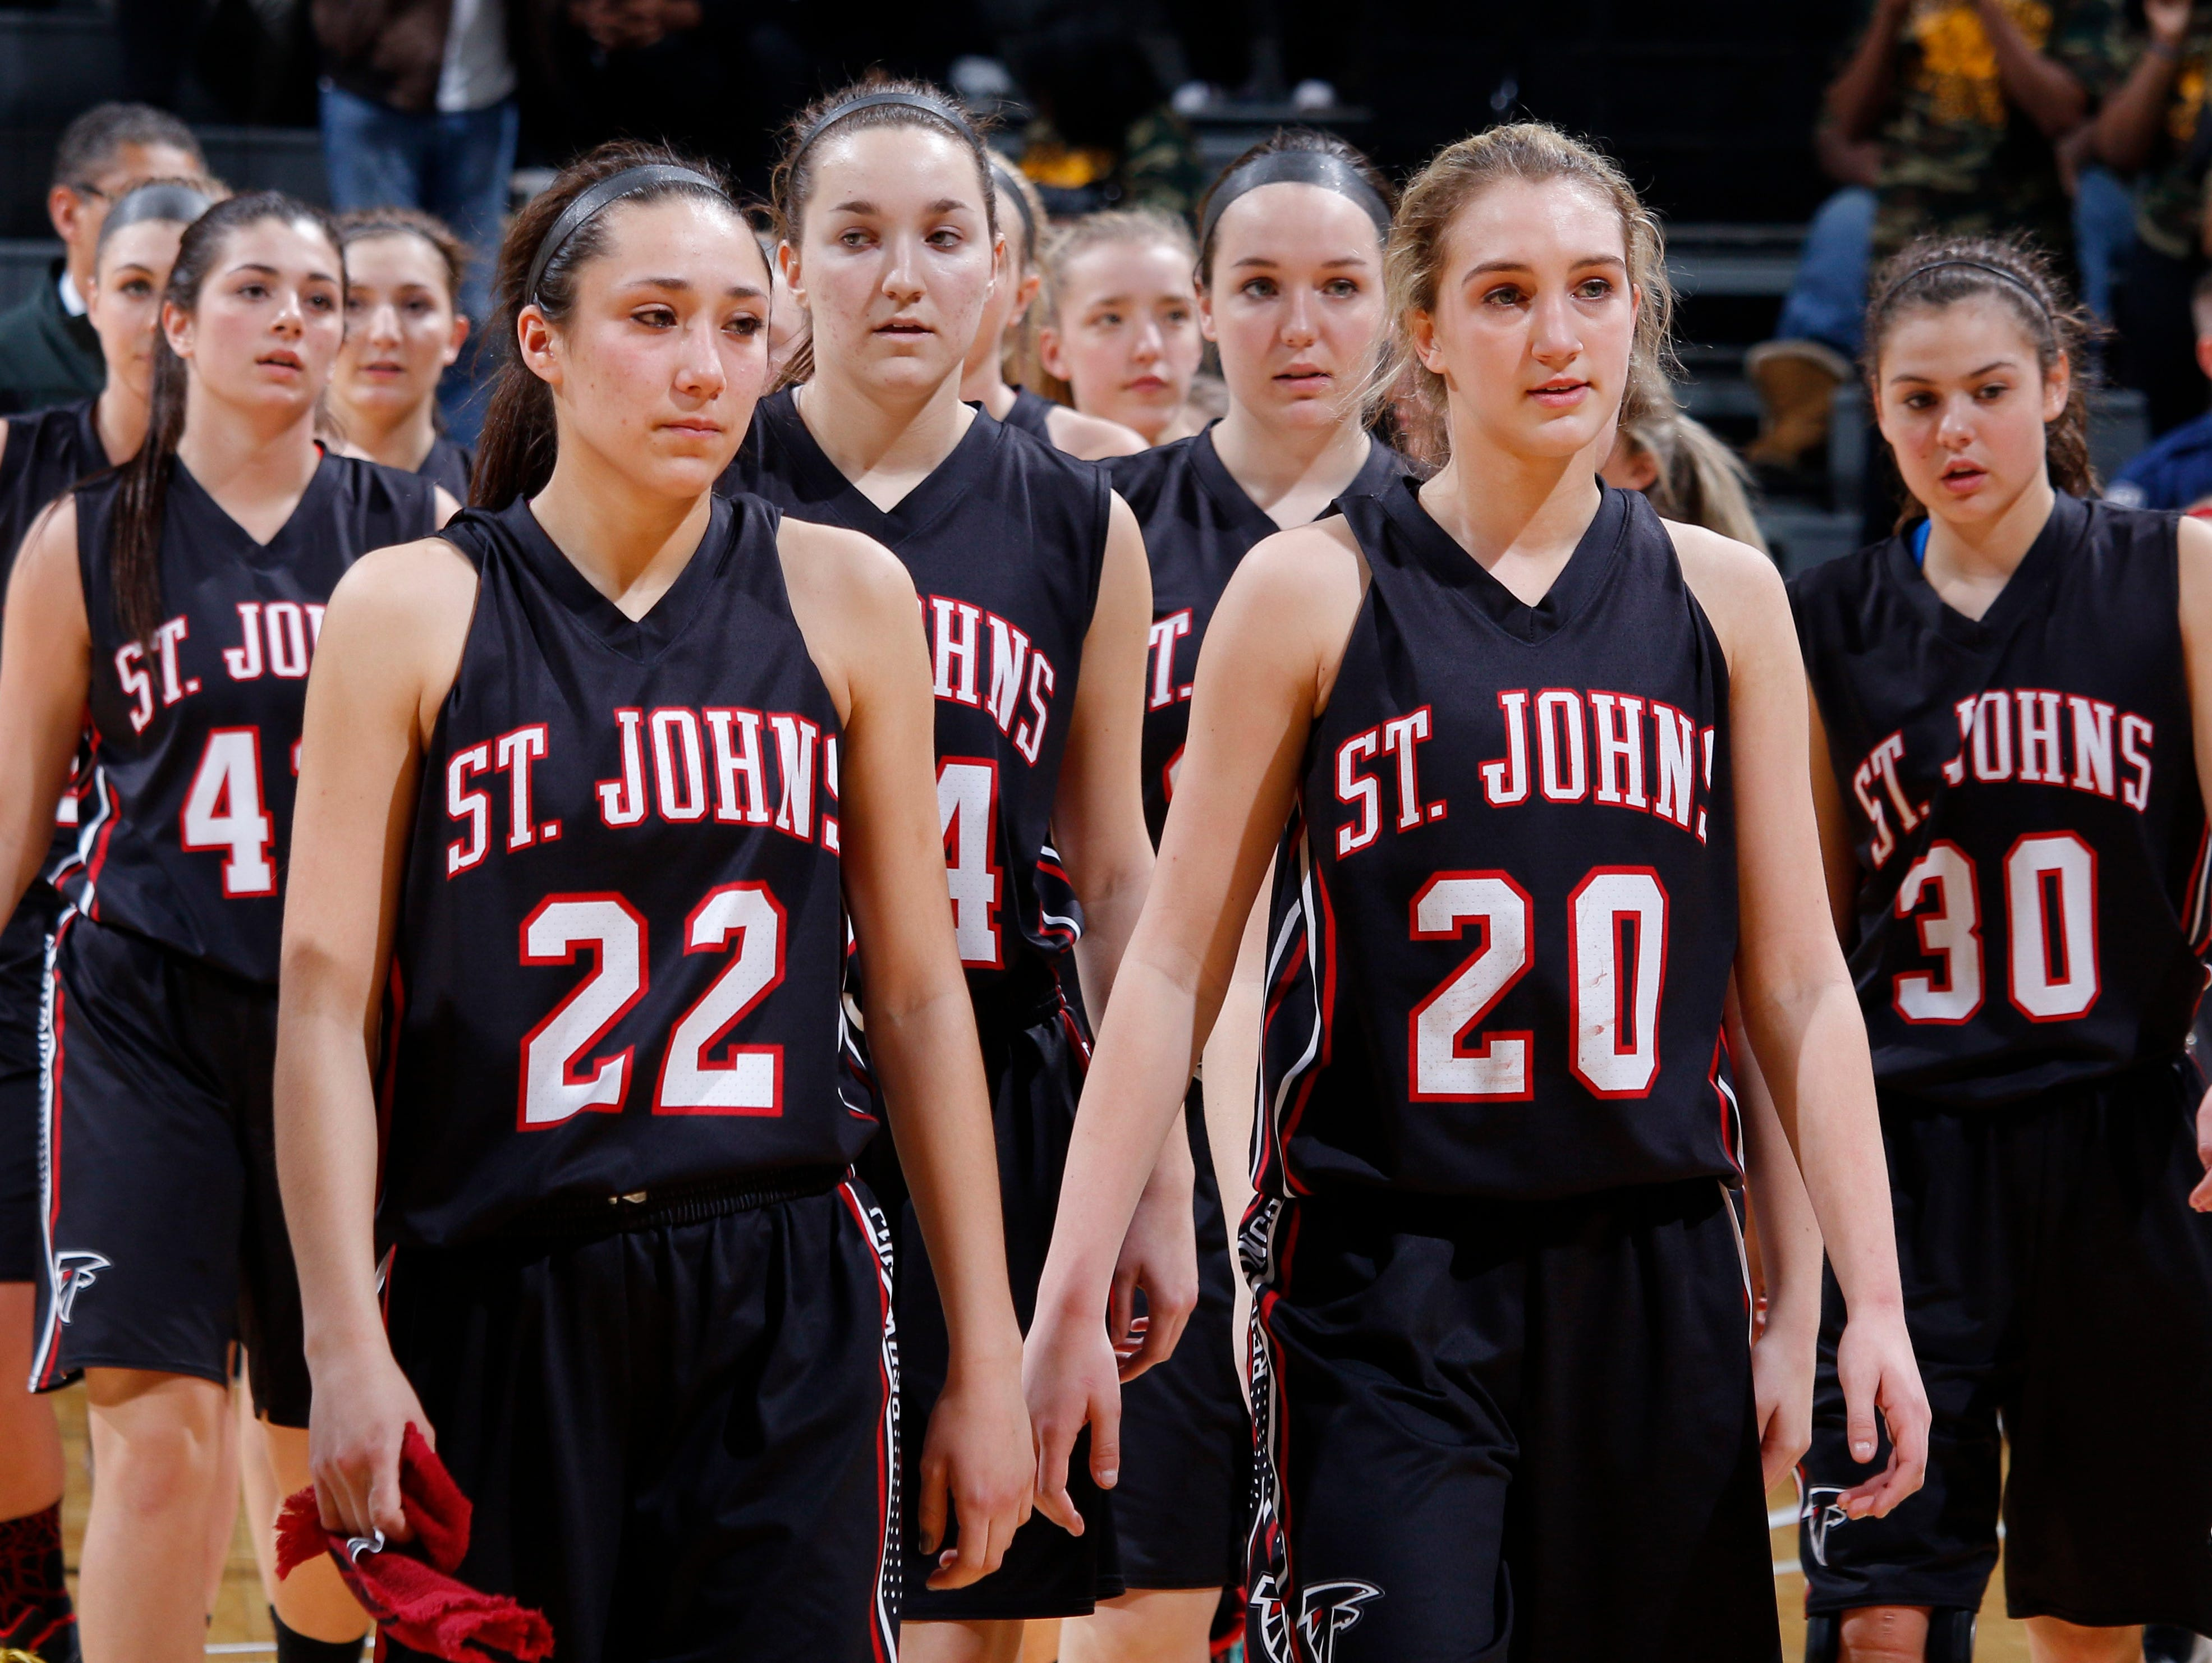 St. Johns players, including Erika Ballinger (22) and Maddie Maloney (20), walk off the court following their loss to Detroit King in their MHSAA Class A semifinal game Friday, March 18, 2016, at the Breslin Center in East Lansing. St. Johns fell 56-48.